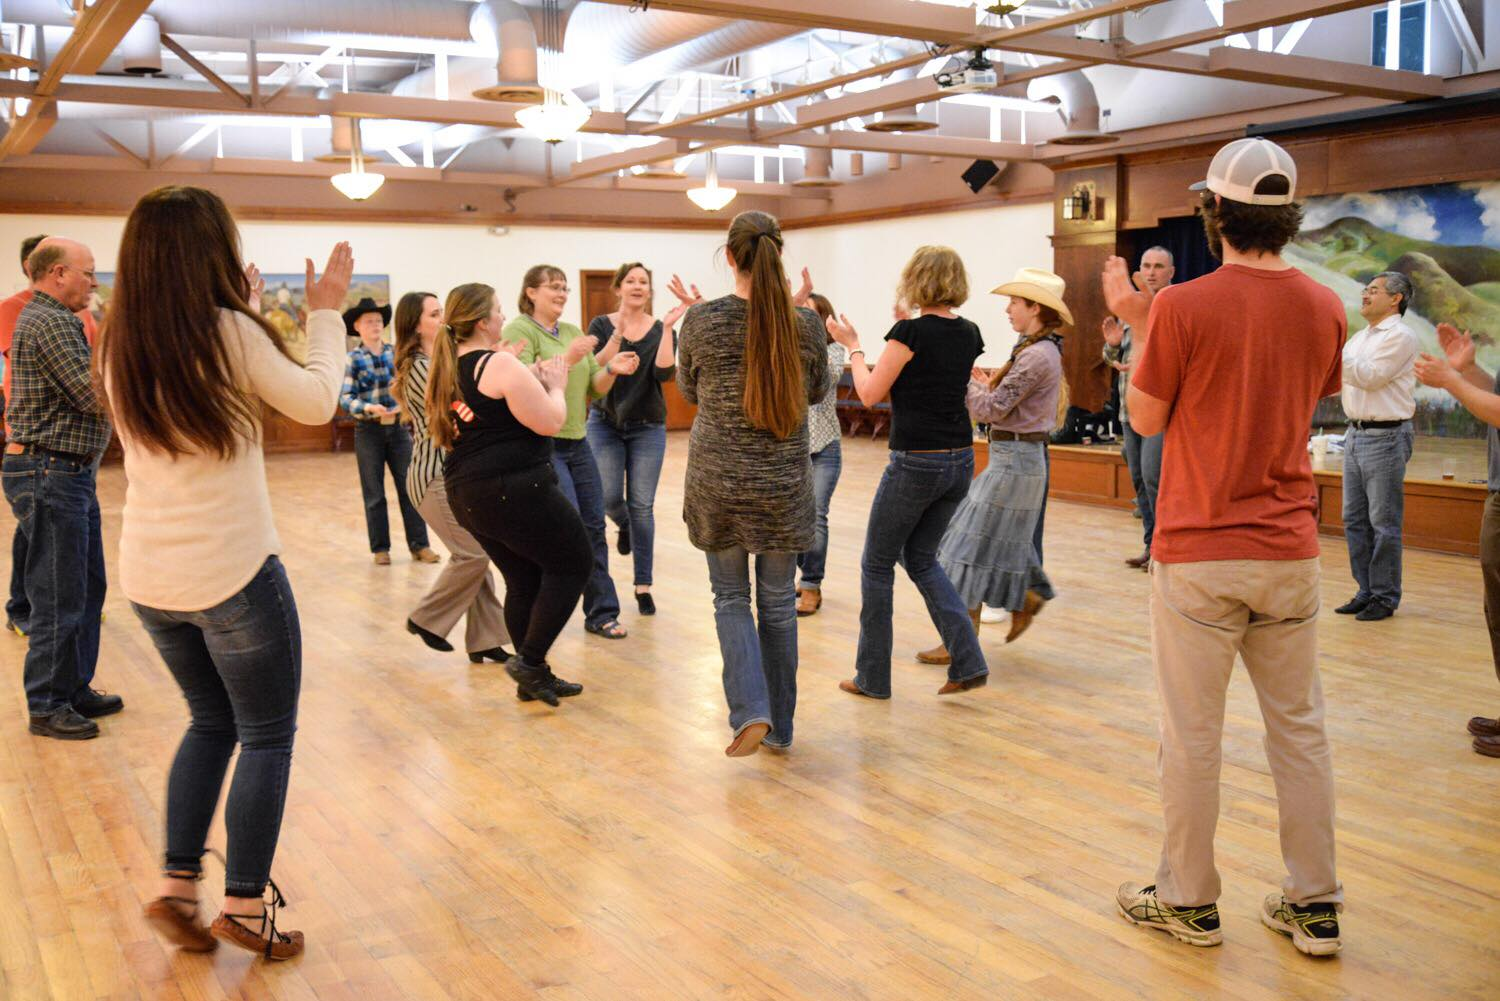 Basque dancing lessons at Let's Dance!, photo by Amber Adeline.